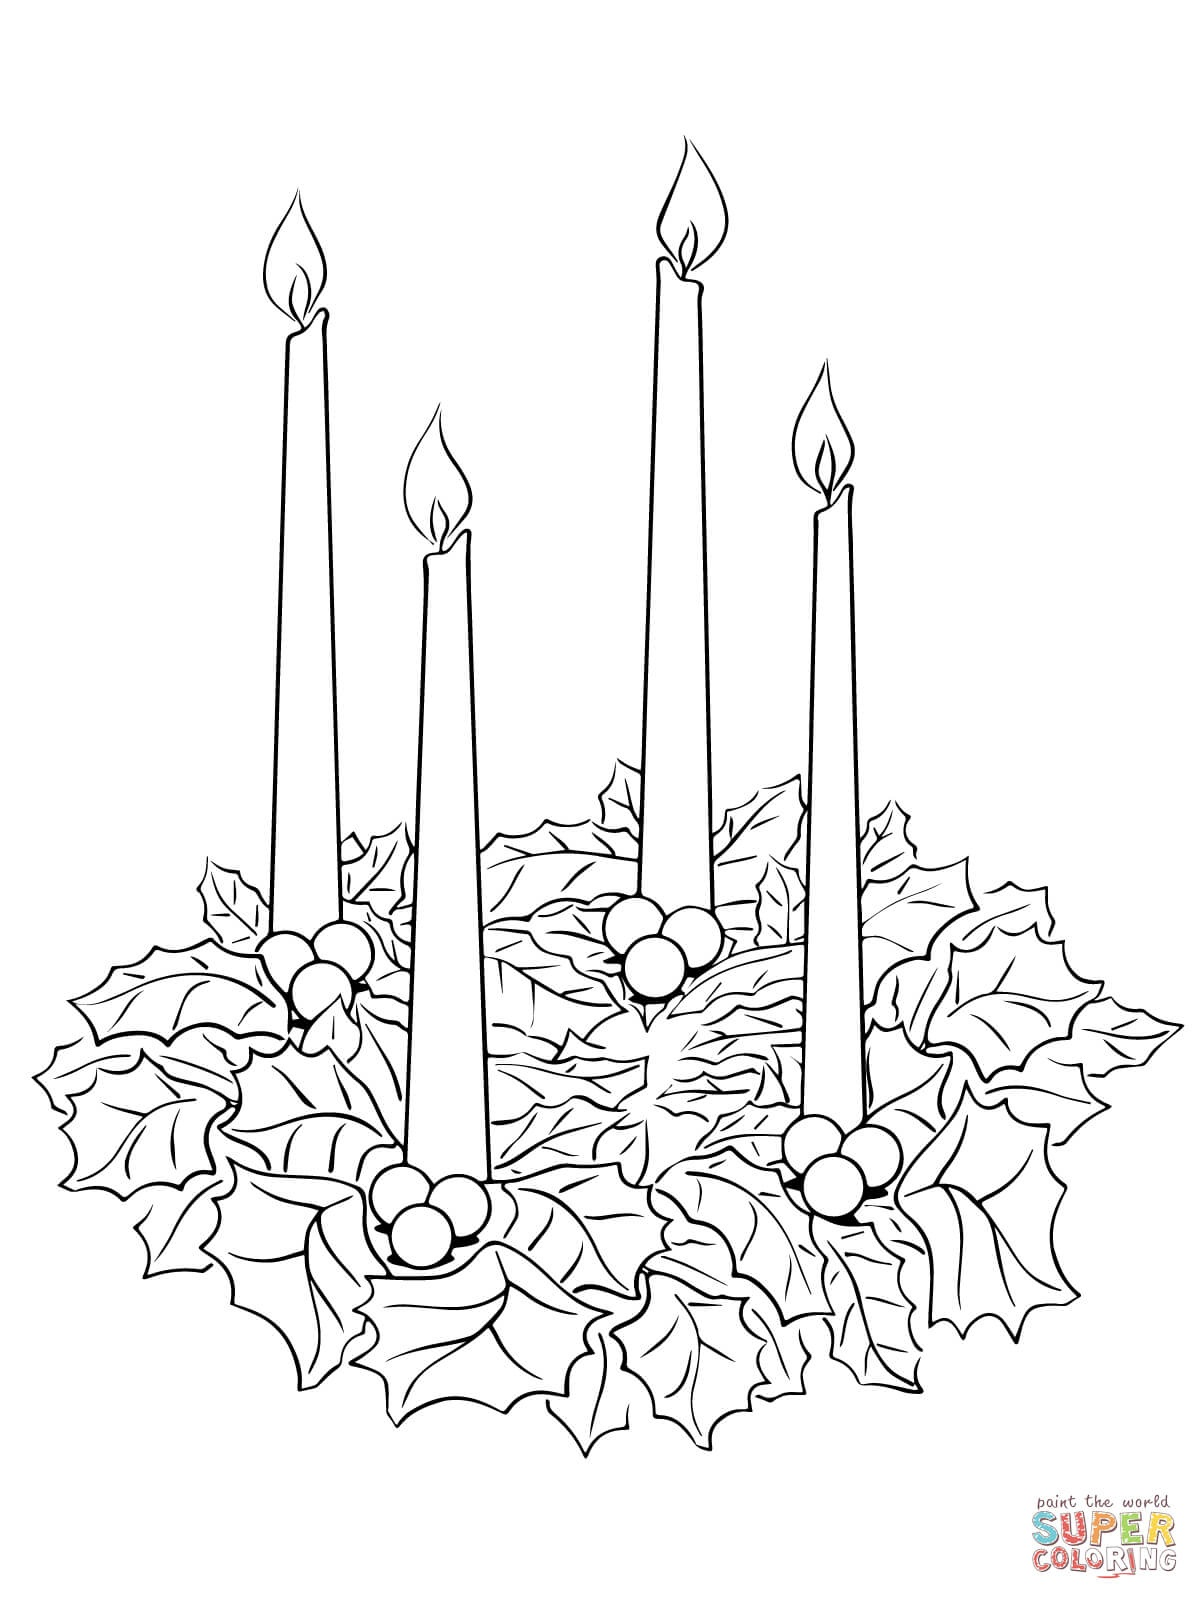 Advent Wreath Coloring Page | Free Printable Coloring Pages - Free Advent Wreath Printables